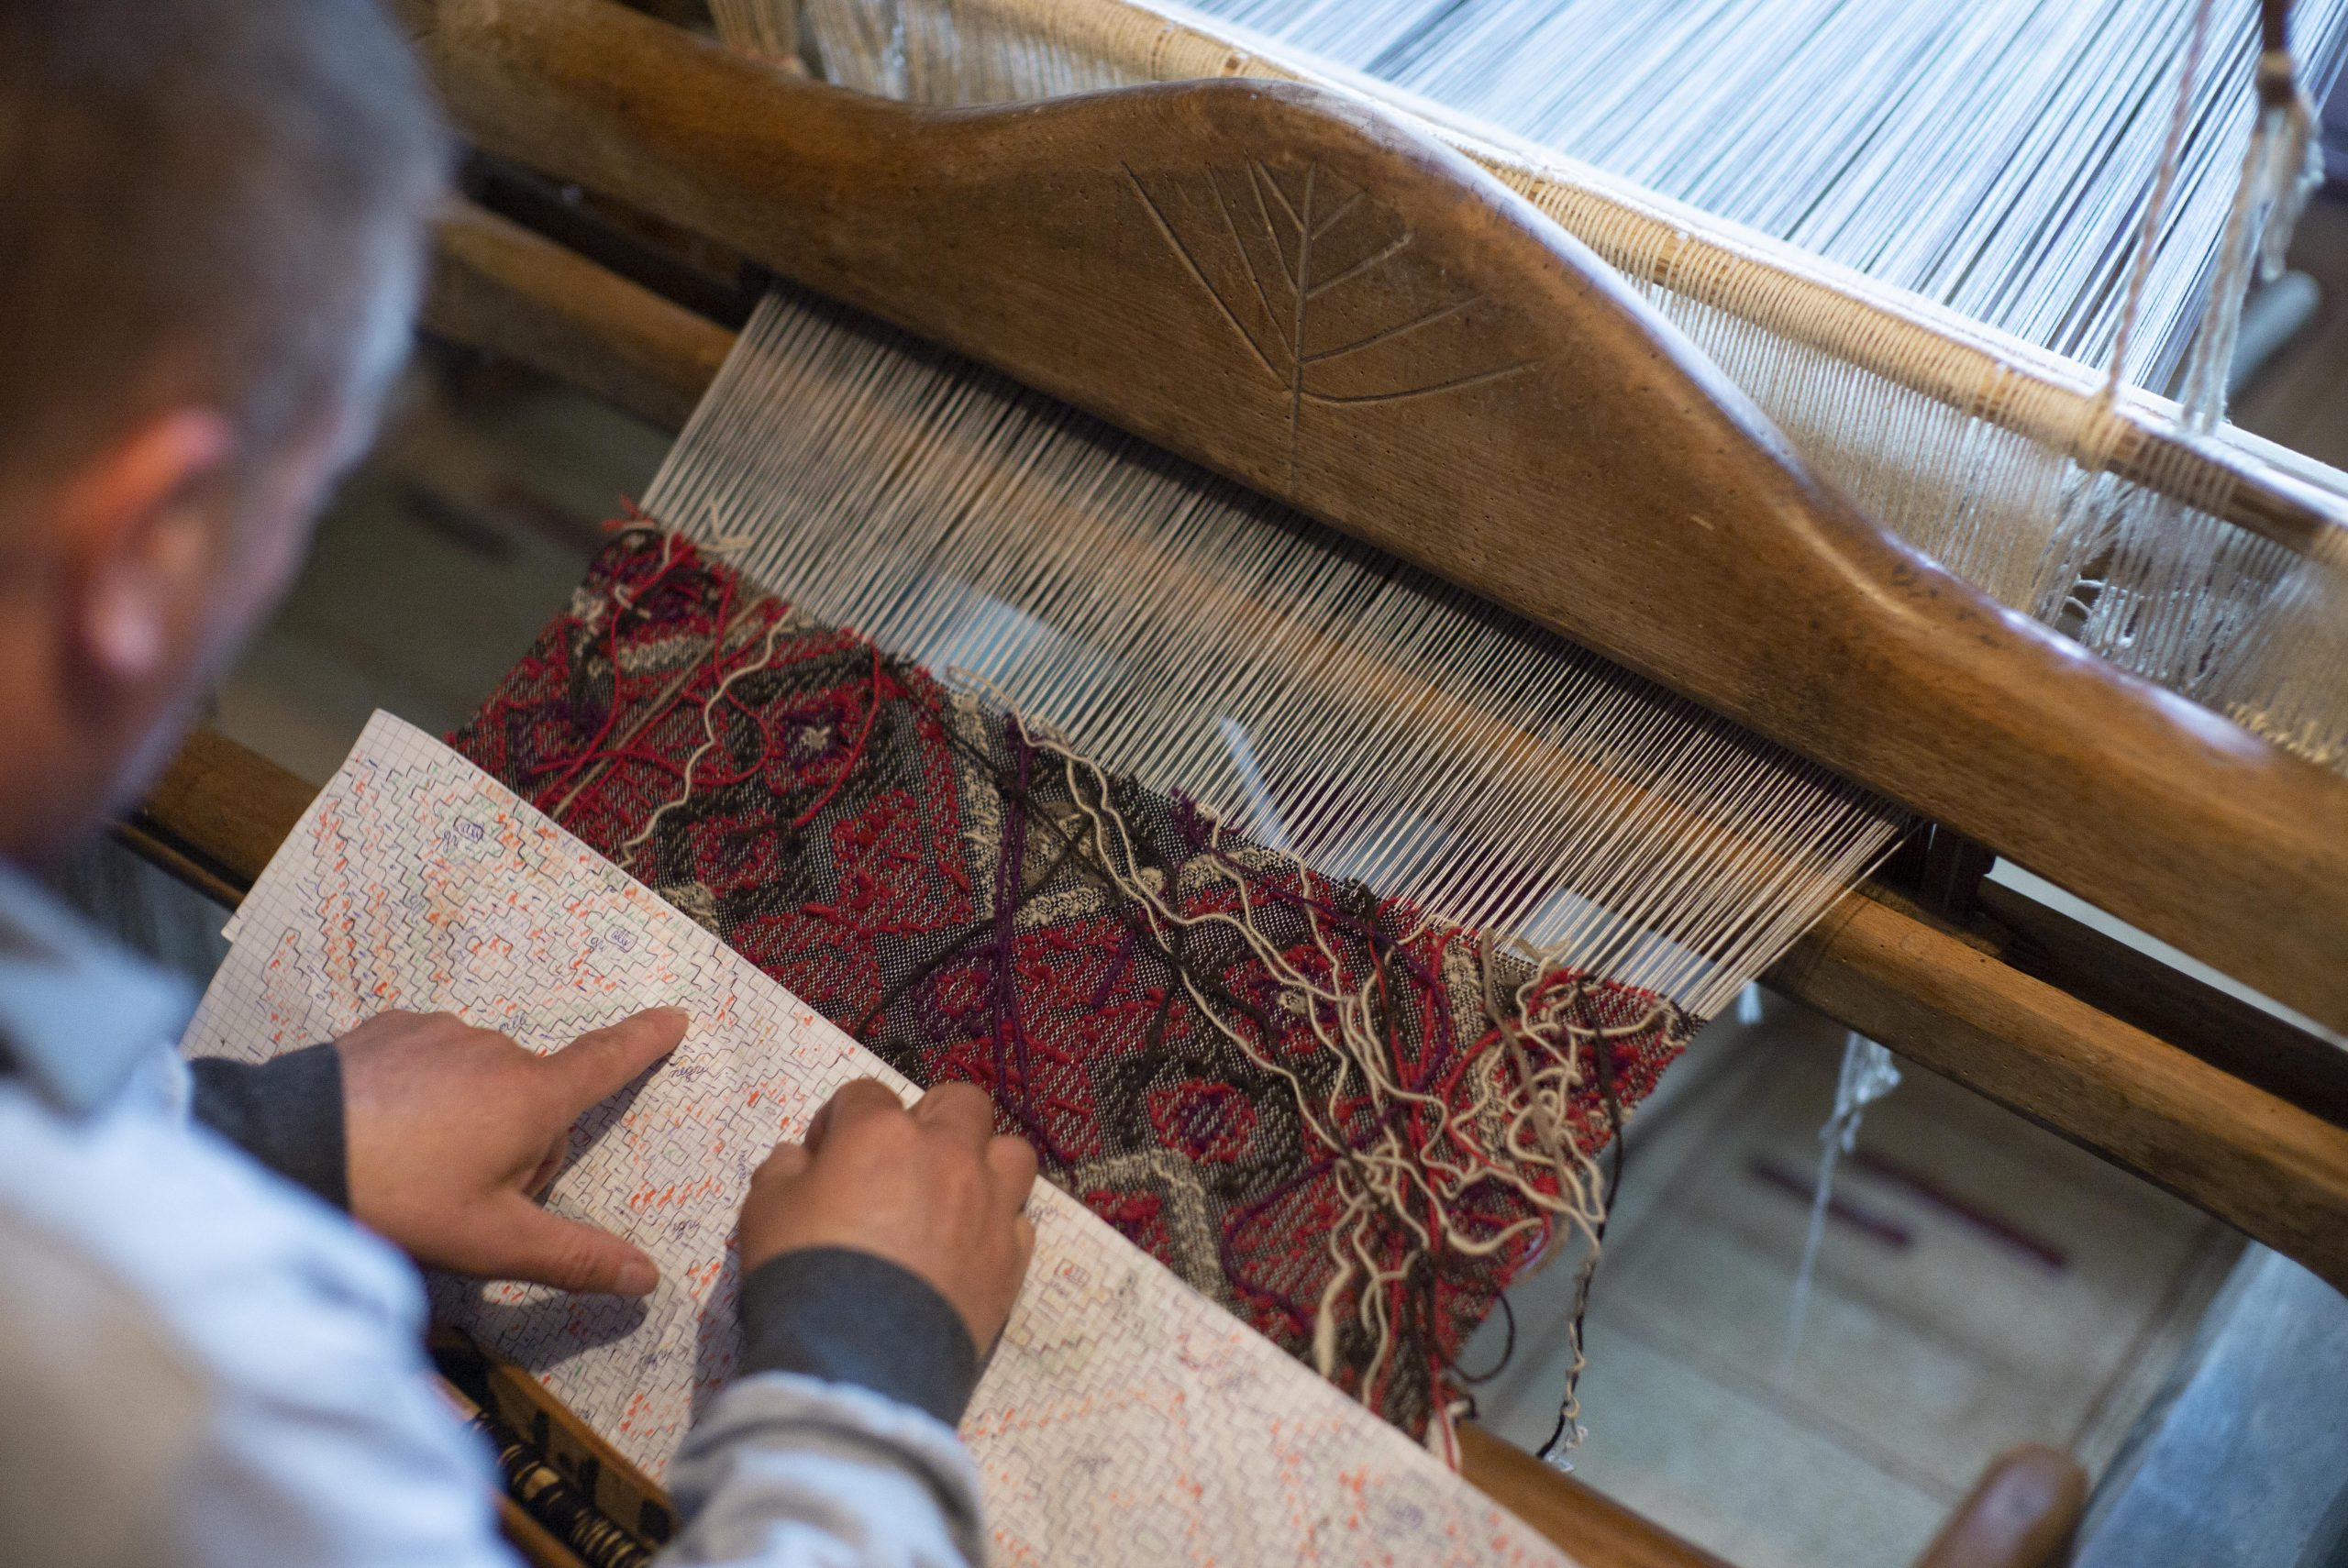 Weaving in Romania. Photo: Nafez Rerhuf